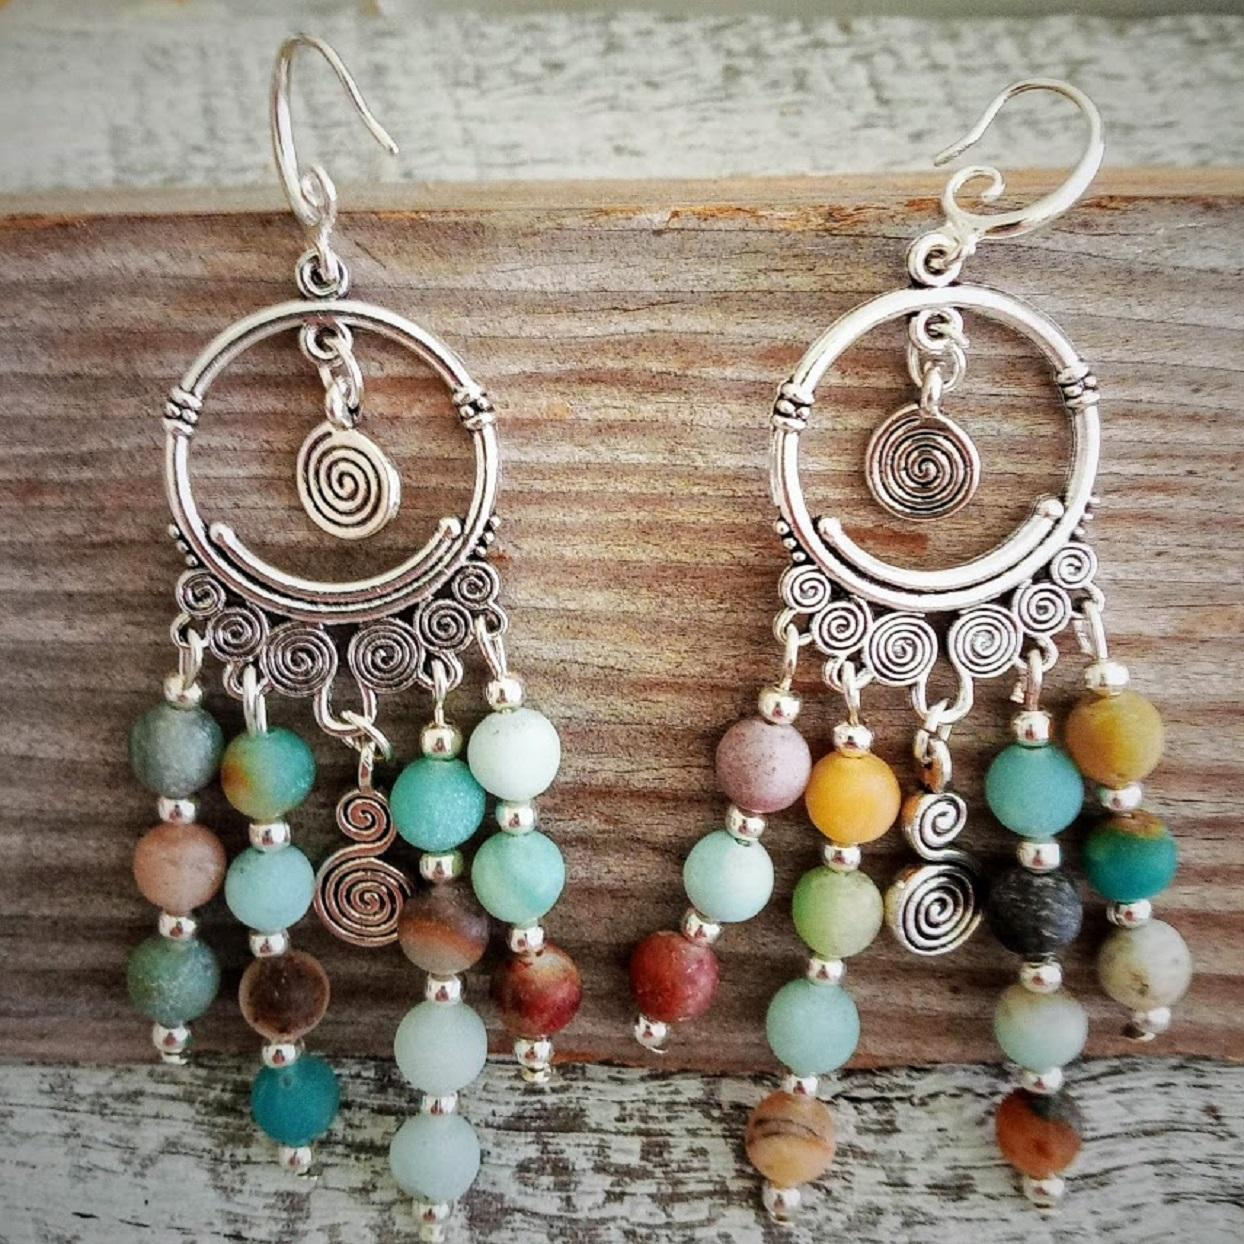 Amazonite Chakra Stone Handmade Earrings